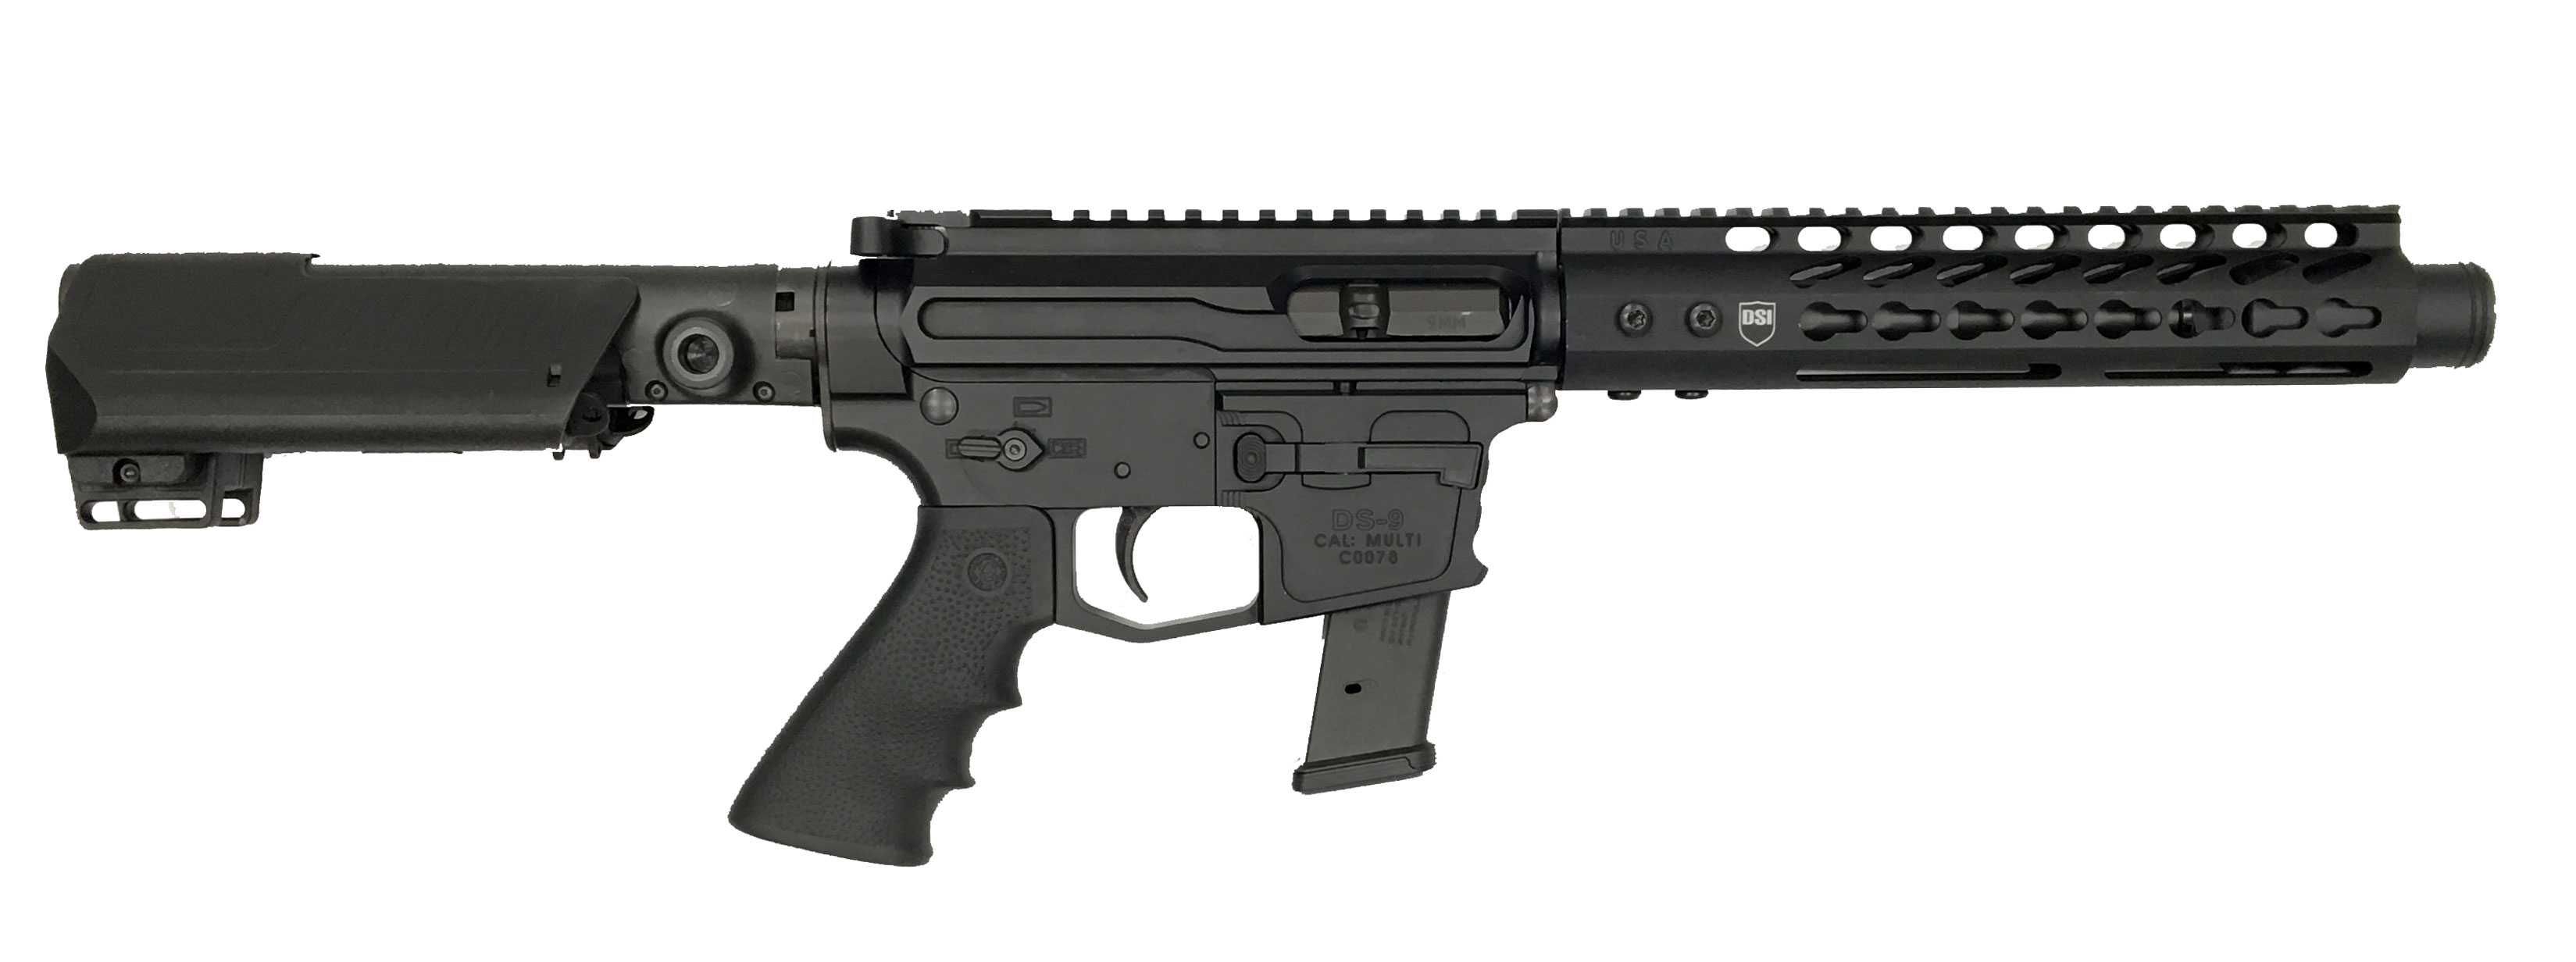 Dark Storm Industries DS Hailstorm 9mm Pistol and SBR